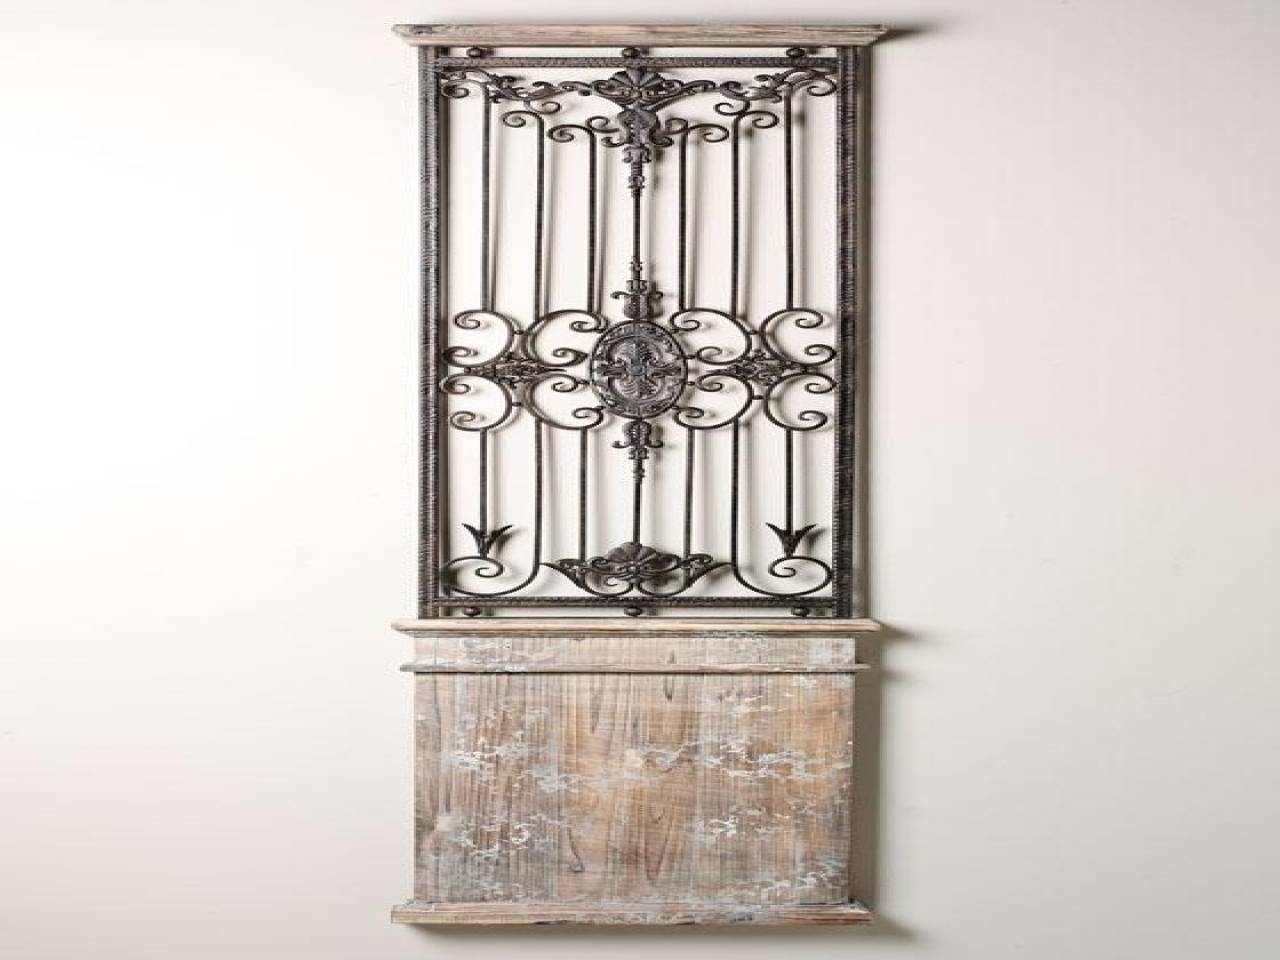 Large Mirrors For Wall, Decorative Metal Gates Decorative Iron Intended For Most Up To Date Iron Gate Wall Art (View 8 of 25)